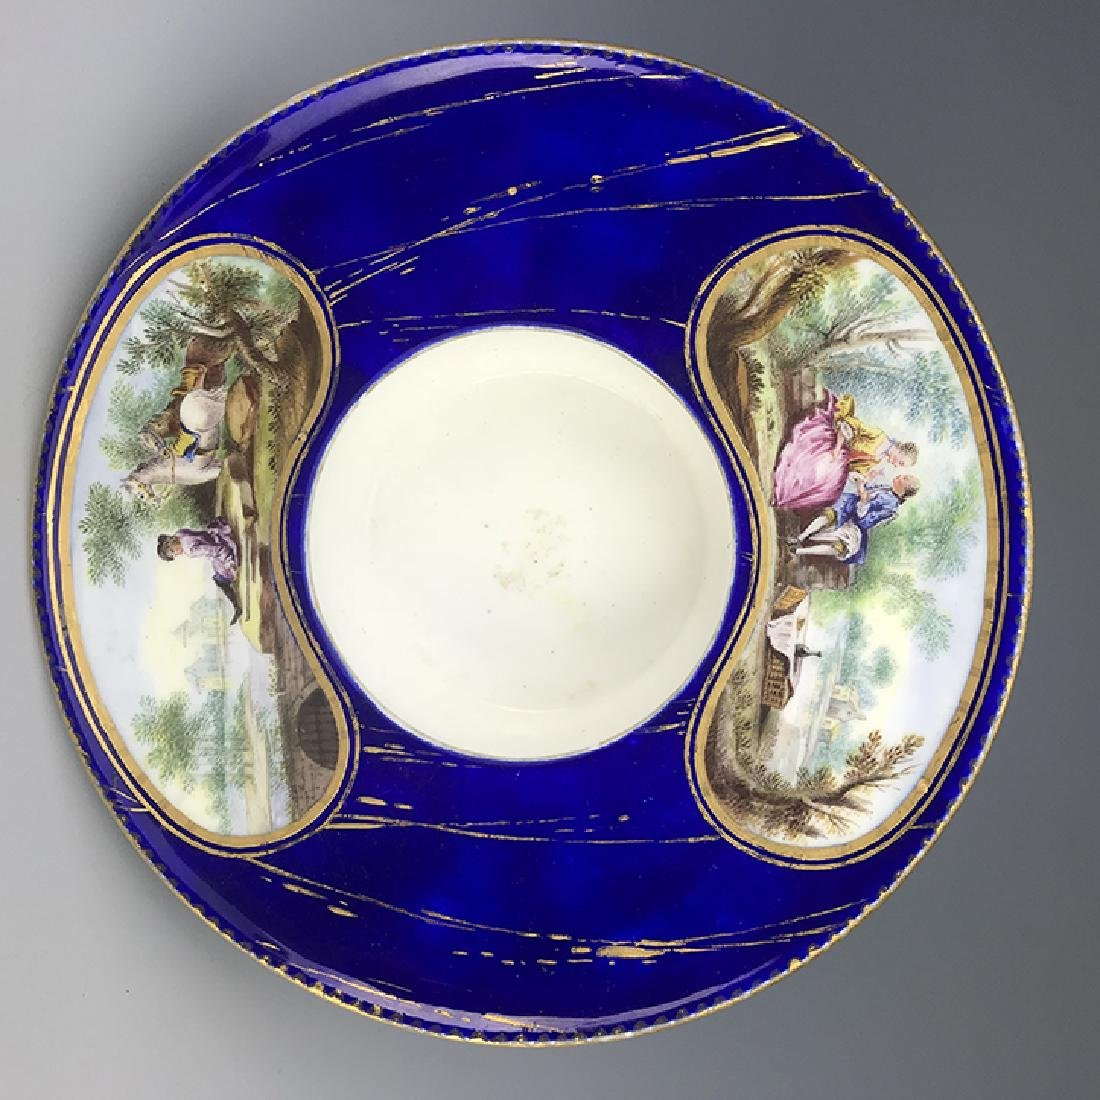 18th C. French Porcelain Sevres Cup & Saucer - 3